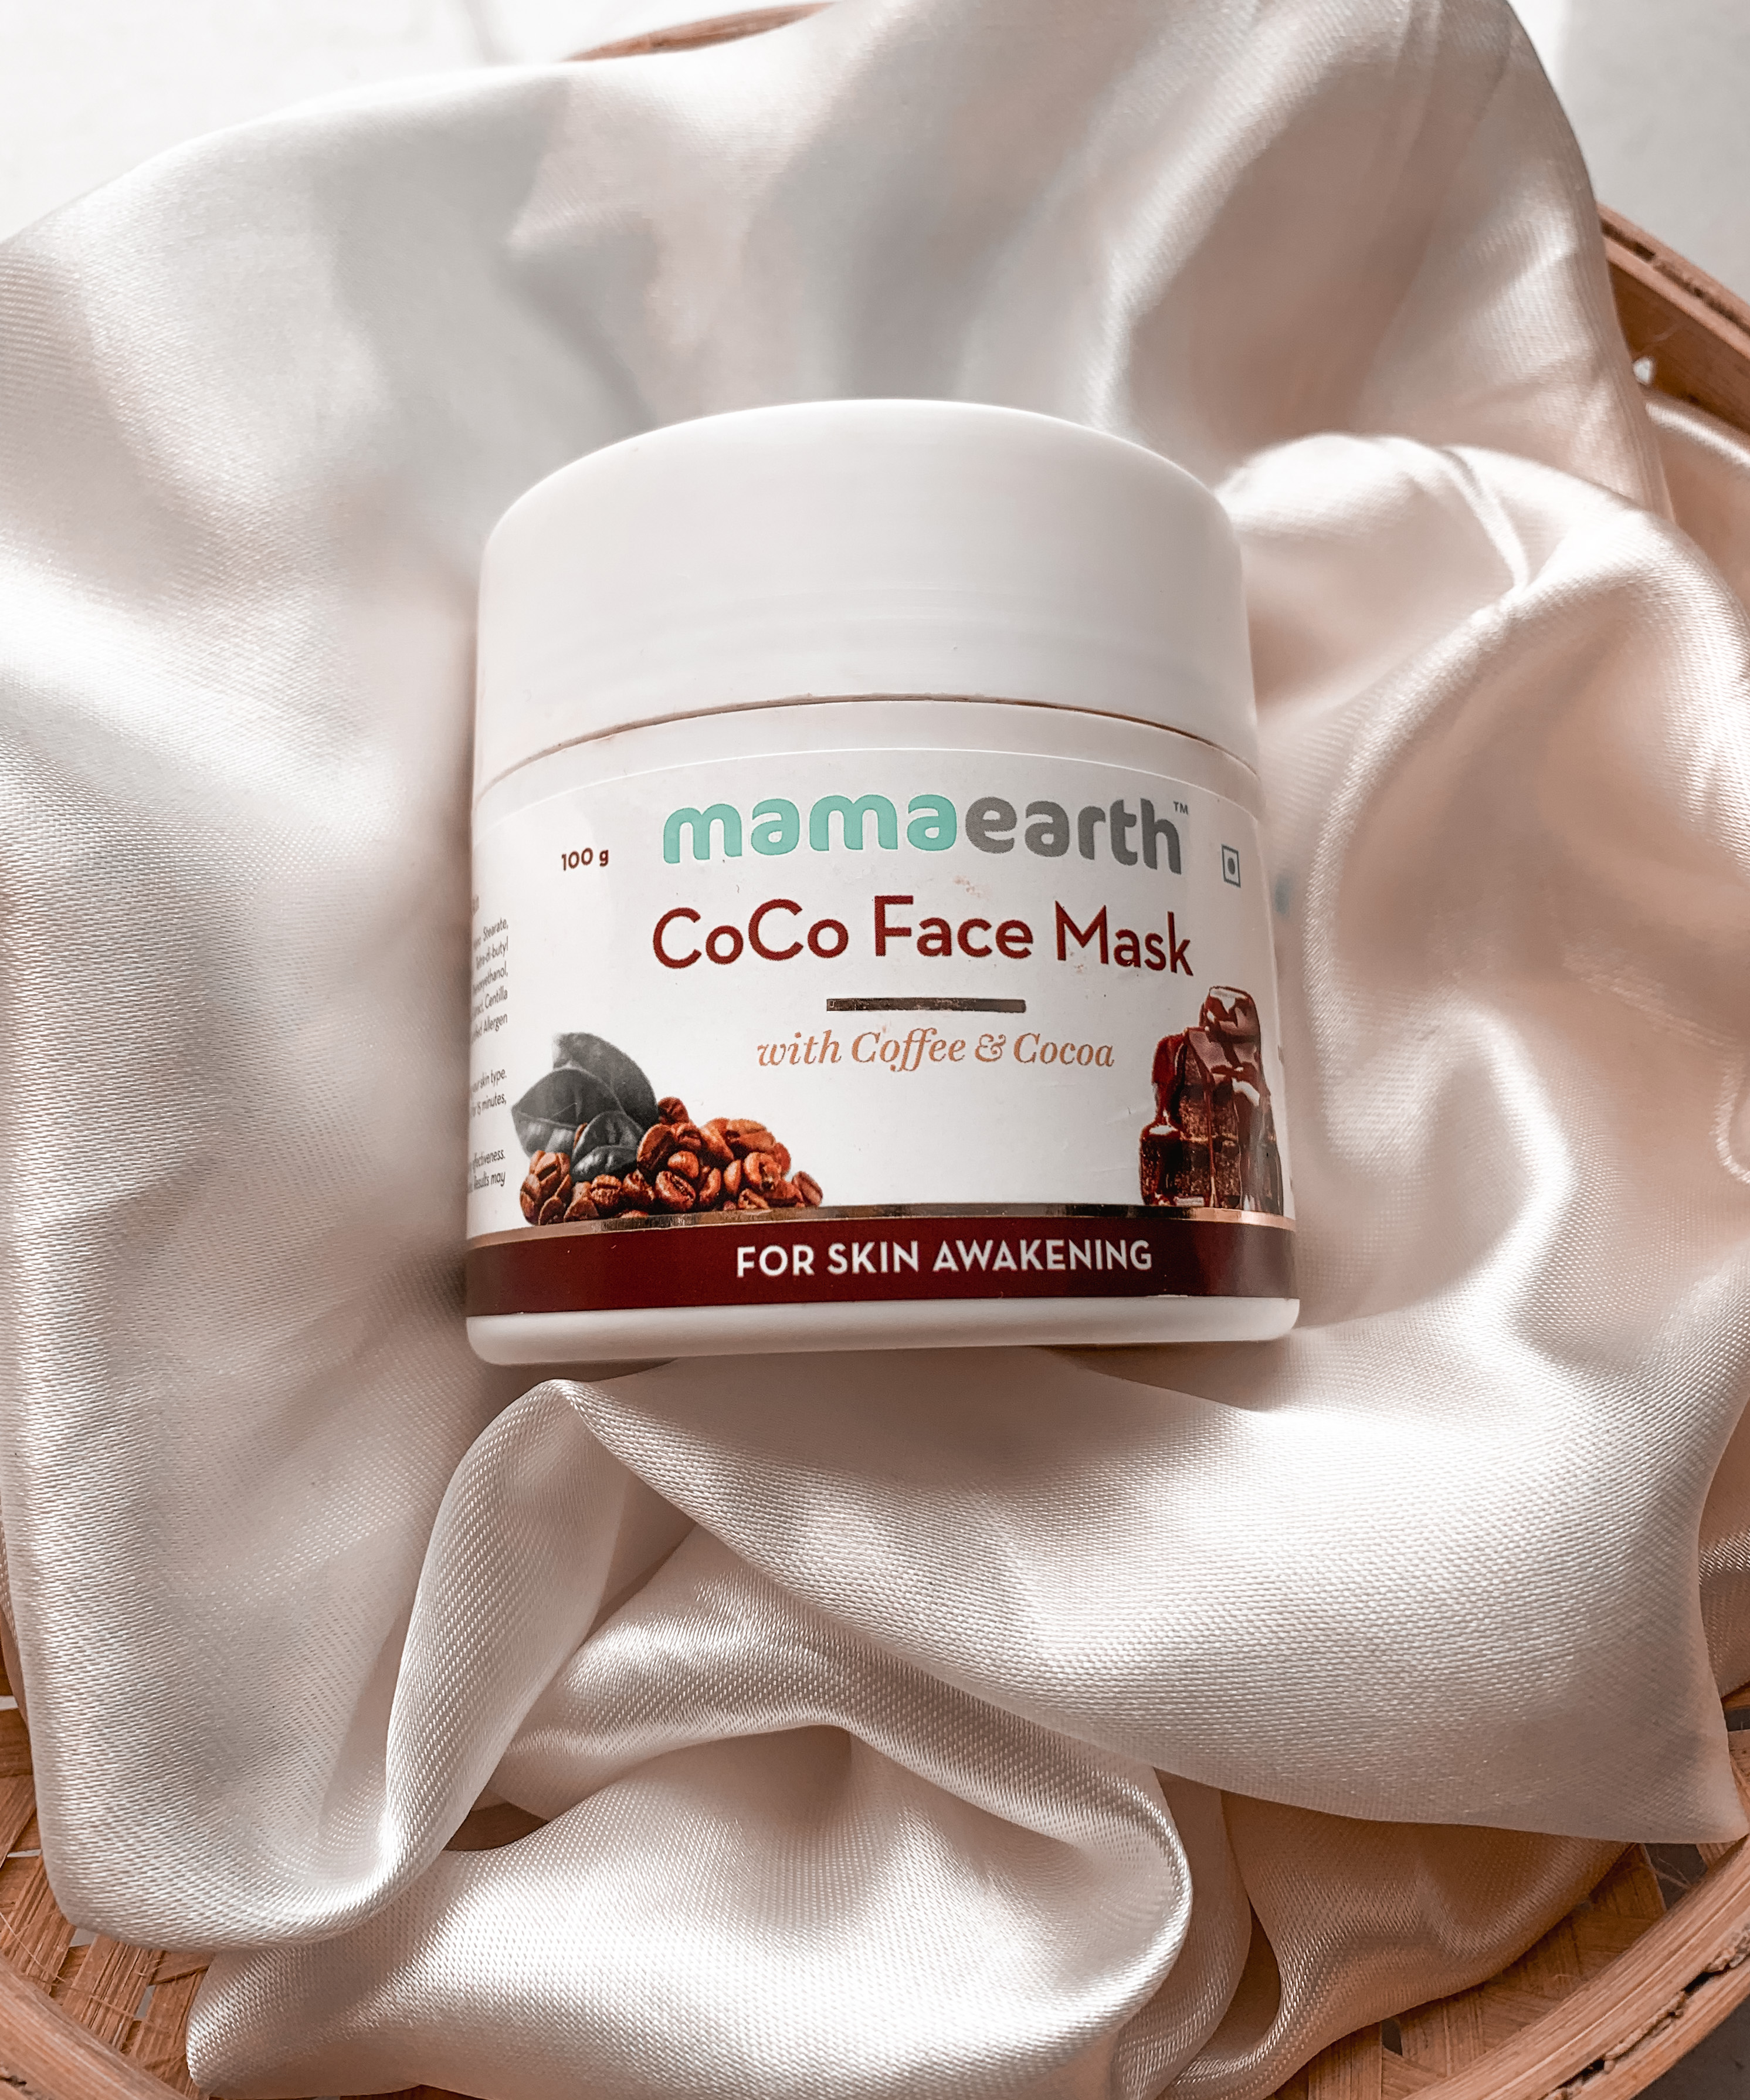 Mamaearth Coco Face Mask With Coffee & Cocoa-Nice product-By tejaswi_baronia